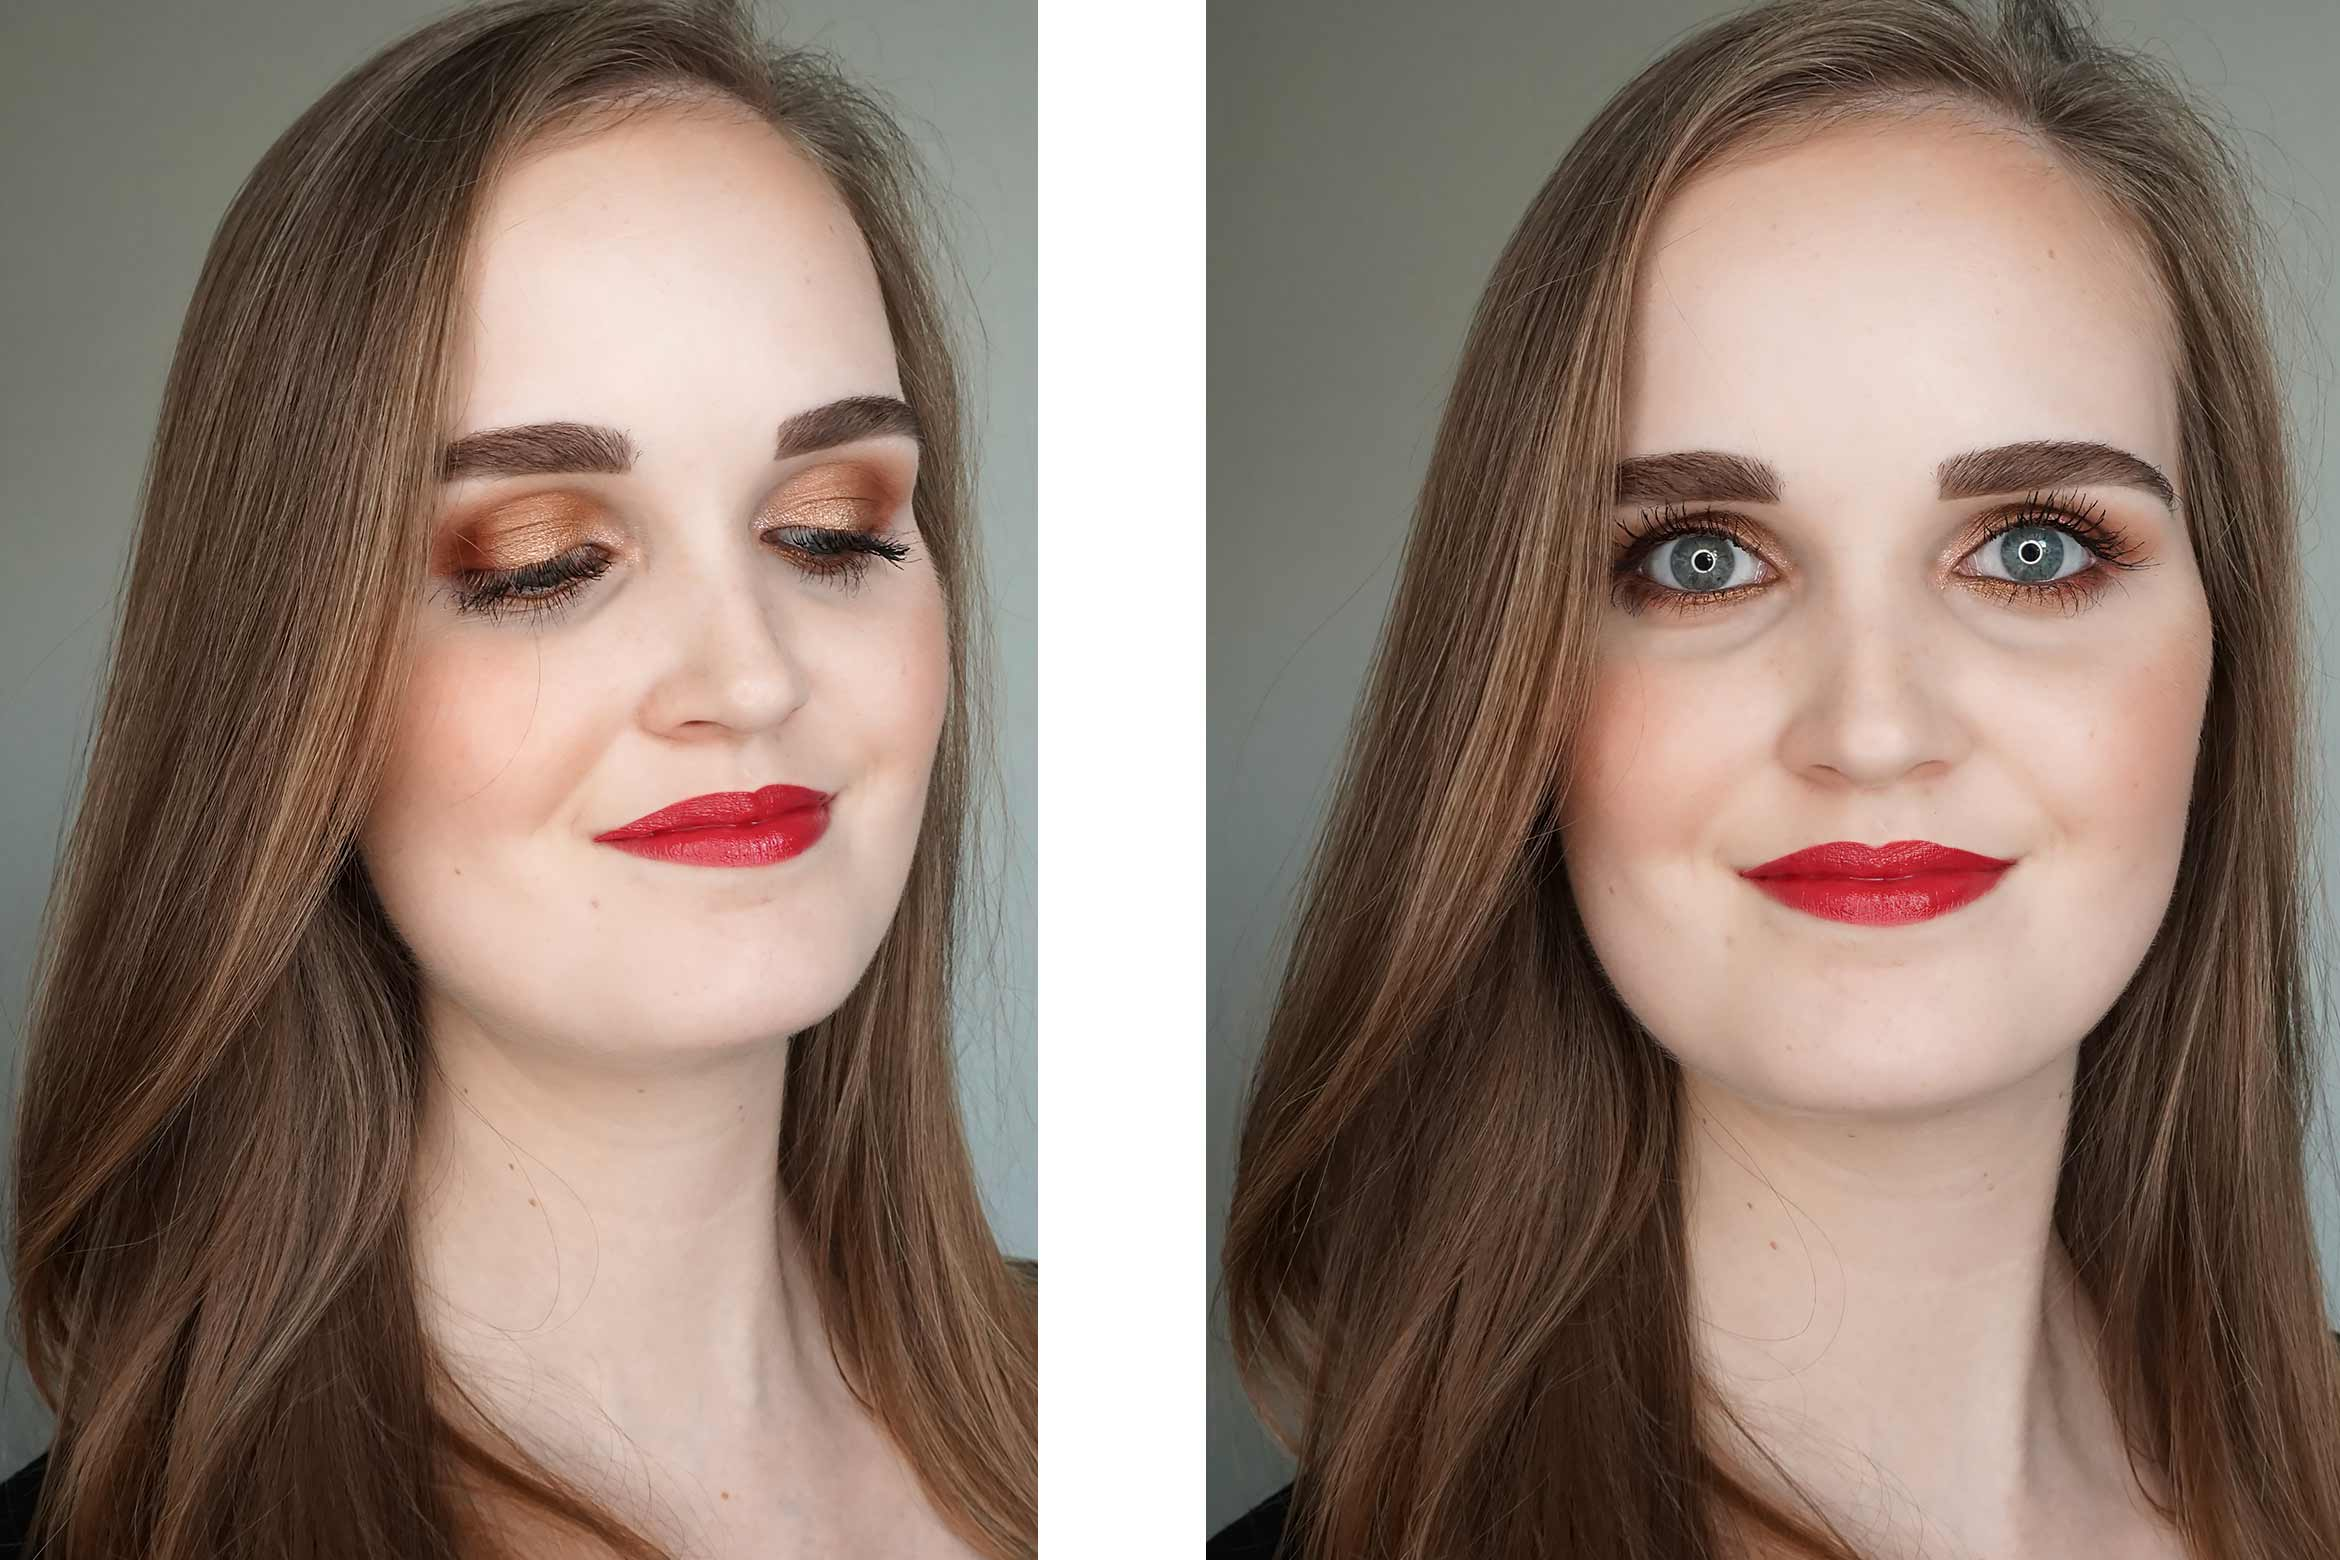 Zoeva-spice-of-life-eyeshadow-palette-review-look-2.2